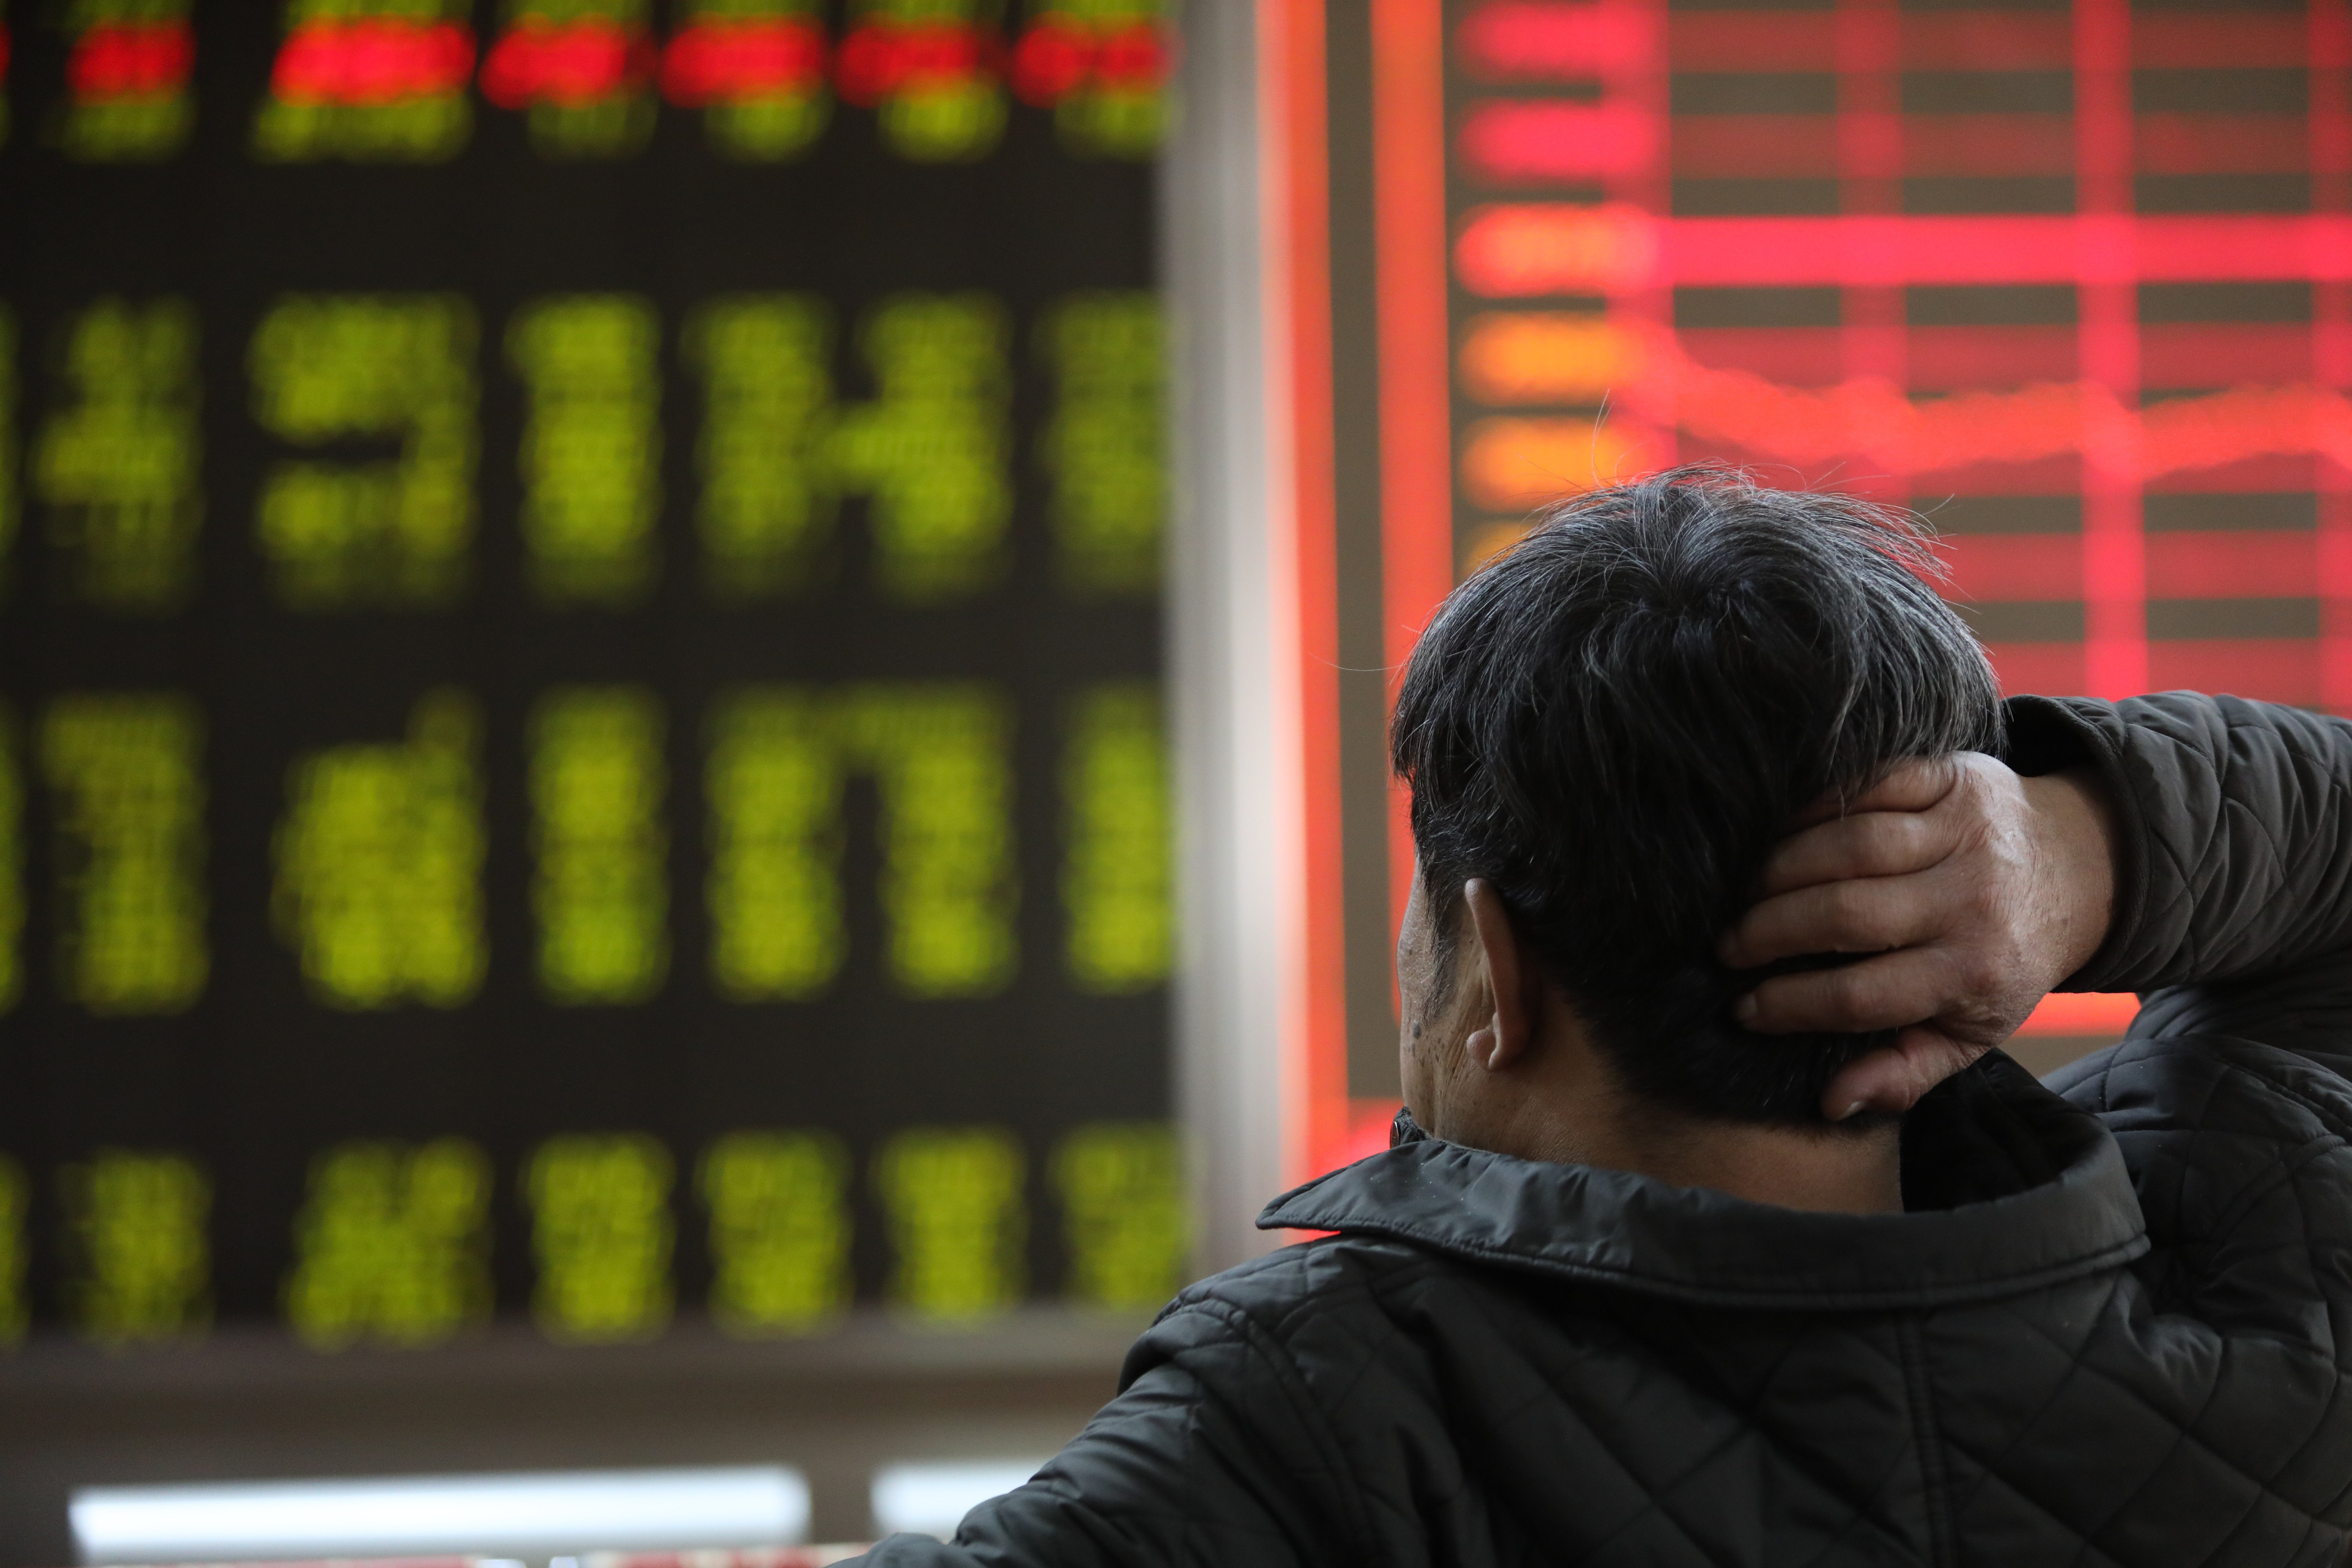 Over 100 Companies Fell By The 10 Per Cent Daily Limit As China Tech Stocks Rocked By News Us Urging Allies To Blacklist Huawei South China Morning Post